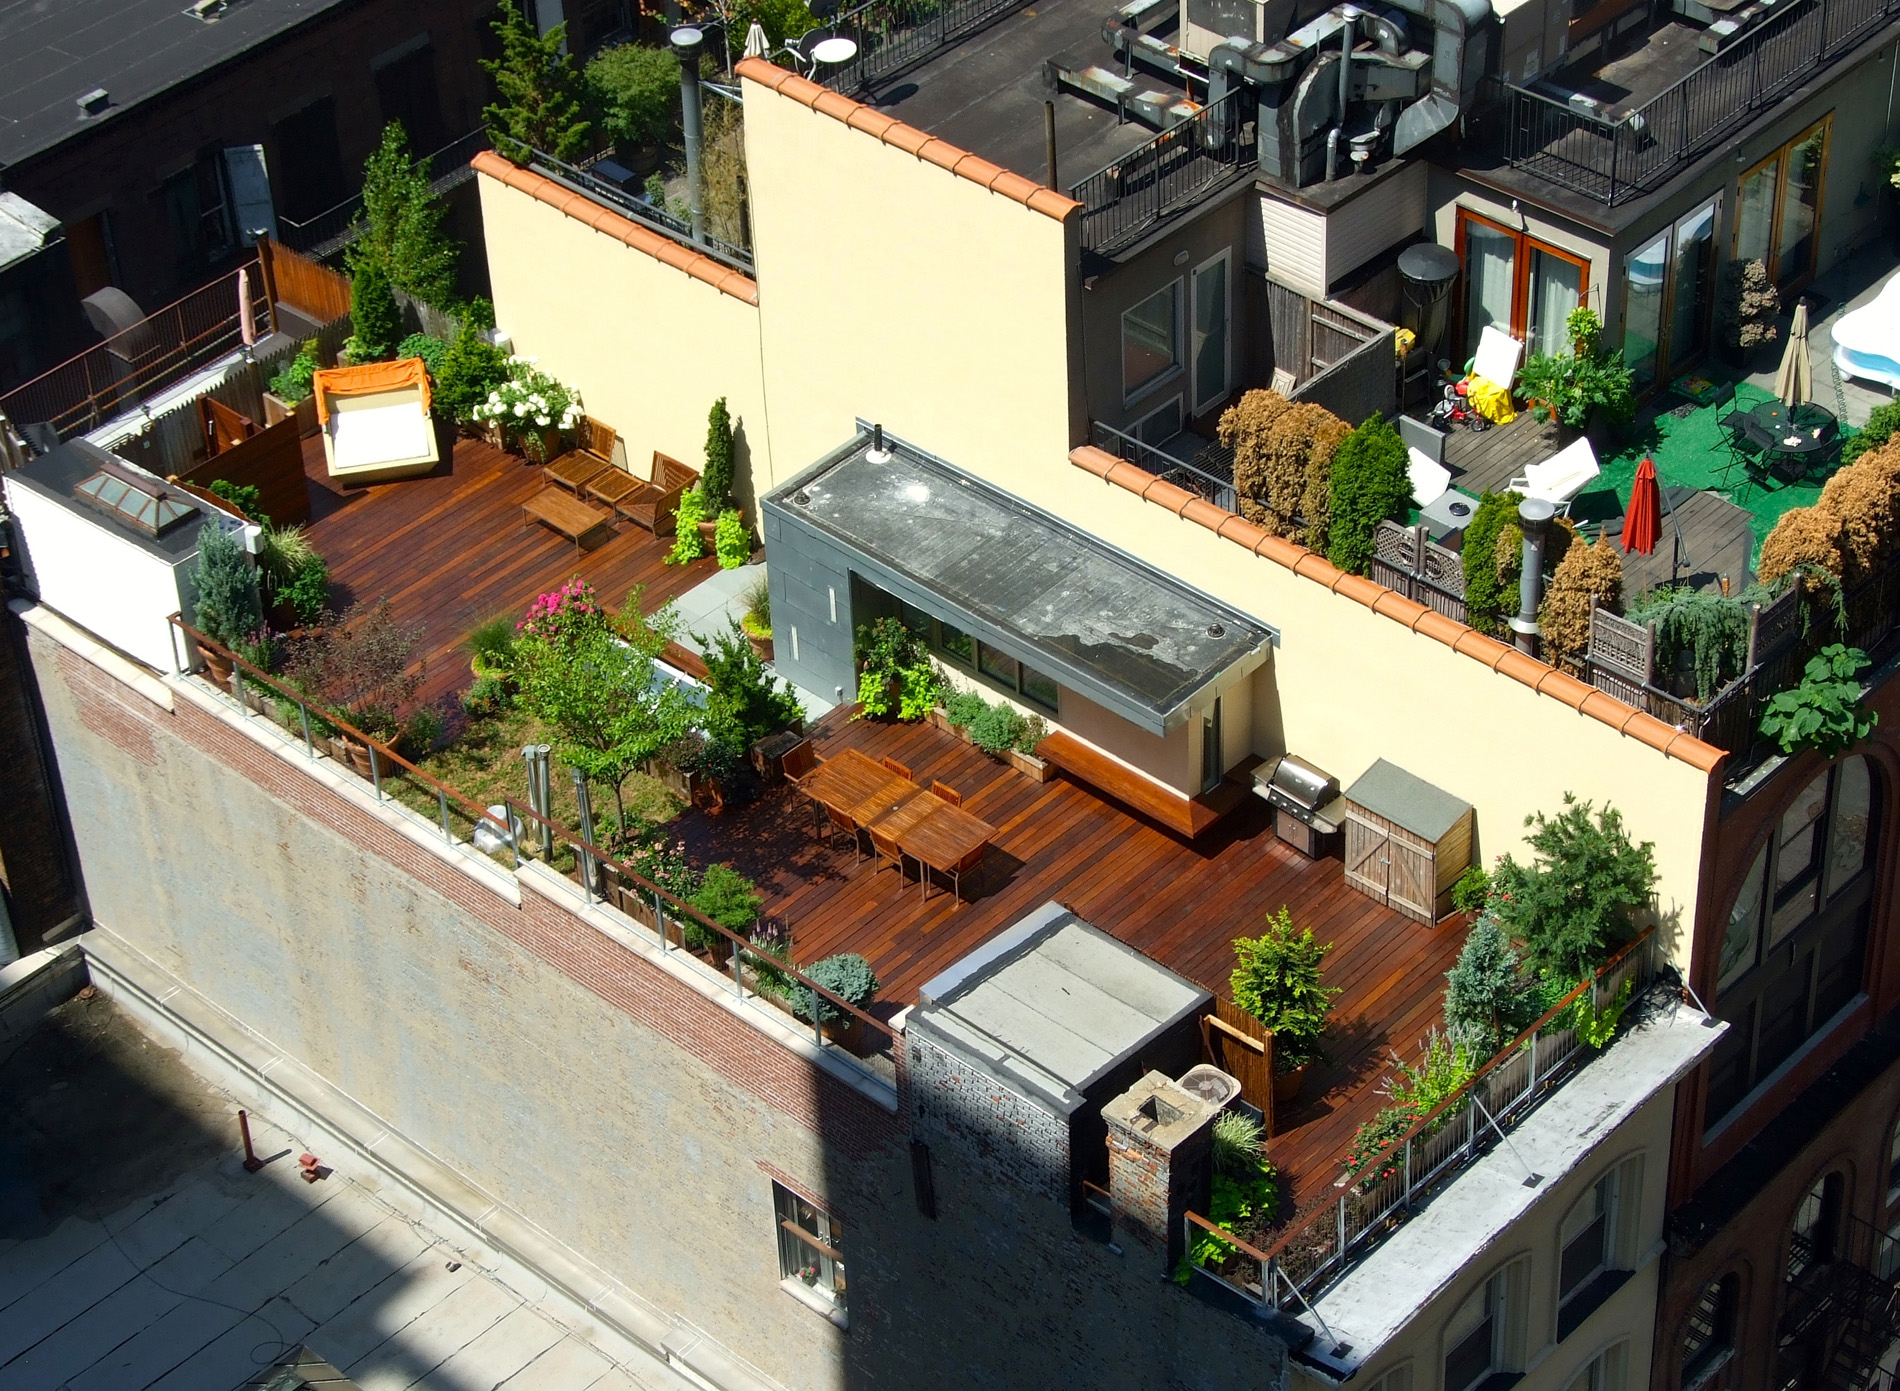 Rooftop terrace decks all decked out for Rooftop deck design ideas